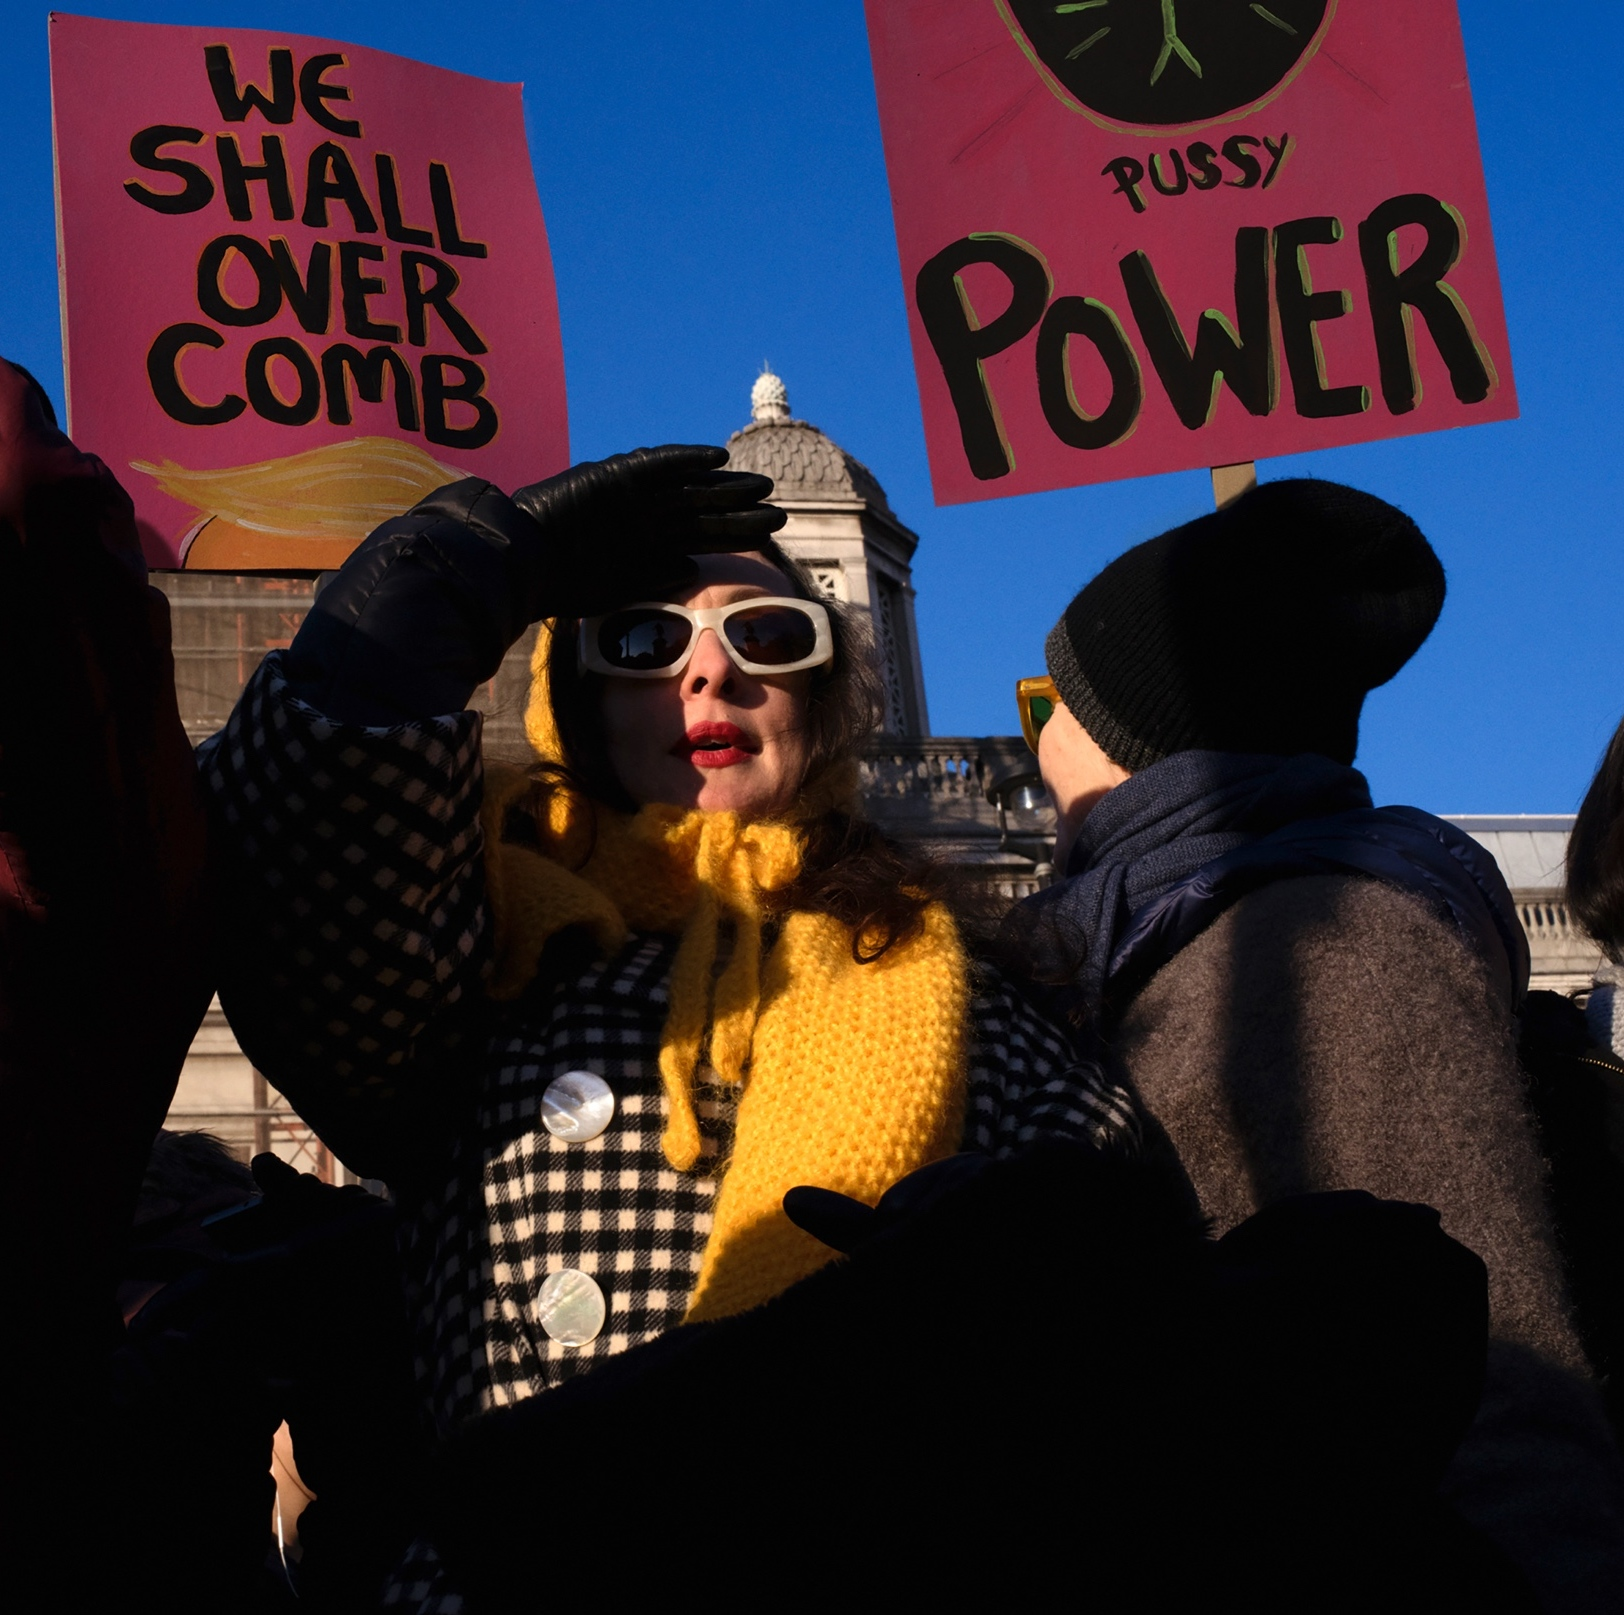 Hannah Starkey, Pussy power, Women's March, London 2017. Courtesy of Maureen Paley, London.